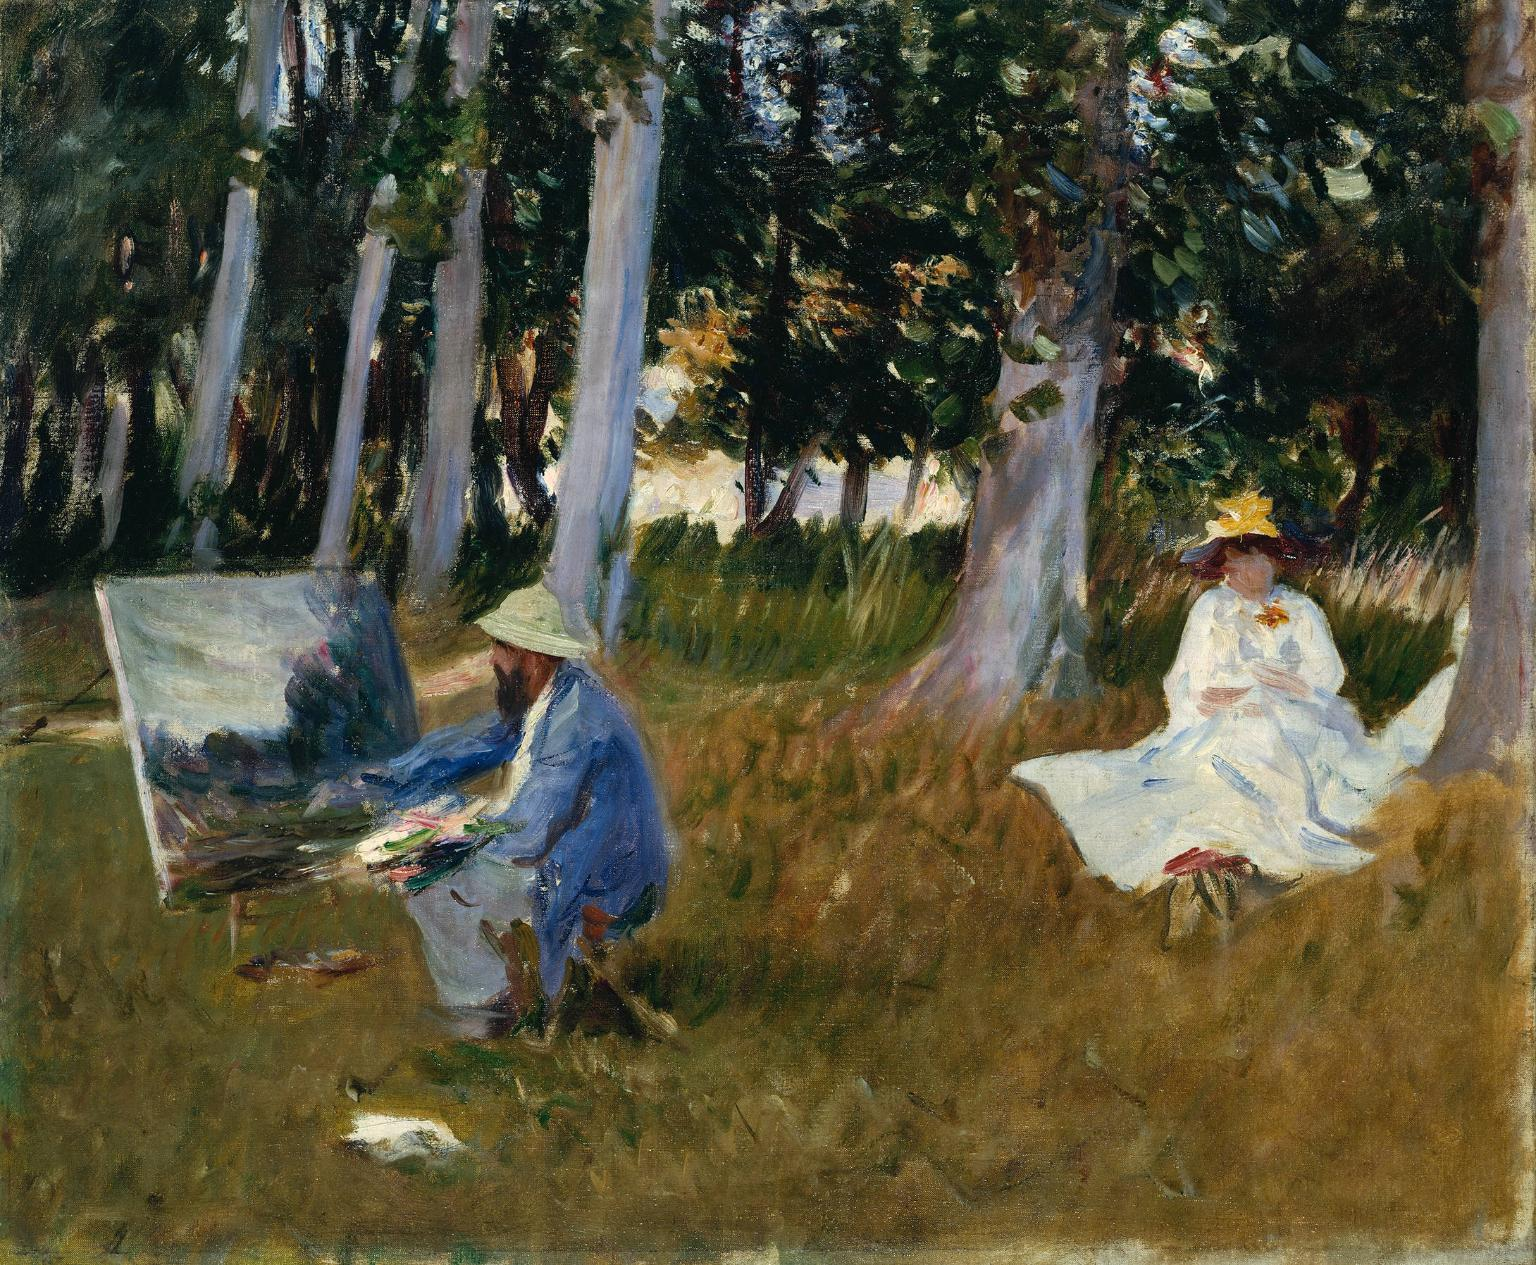 Claude Monet Painting by the Edge of a Wood (1885) by John Singer Sargent, oil painting